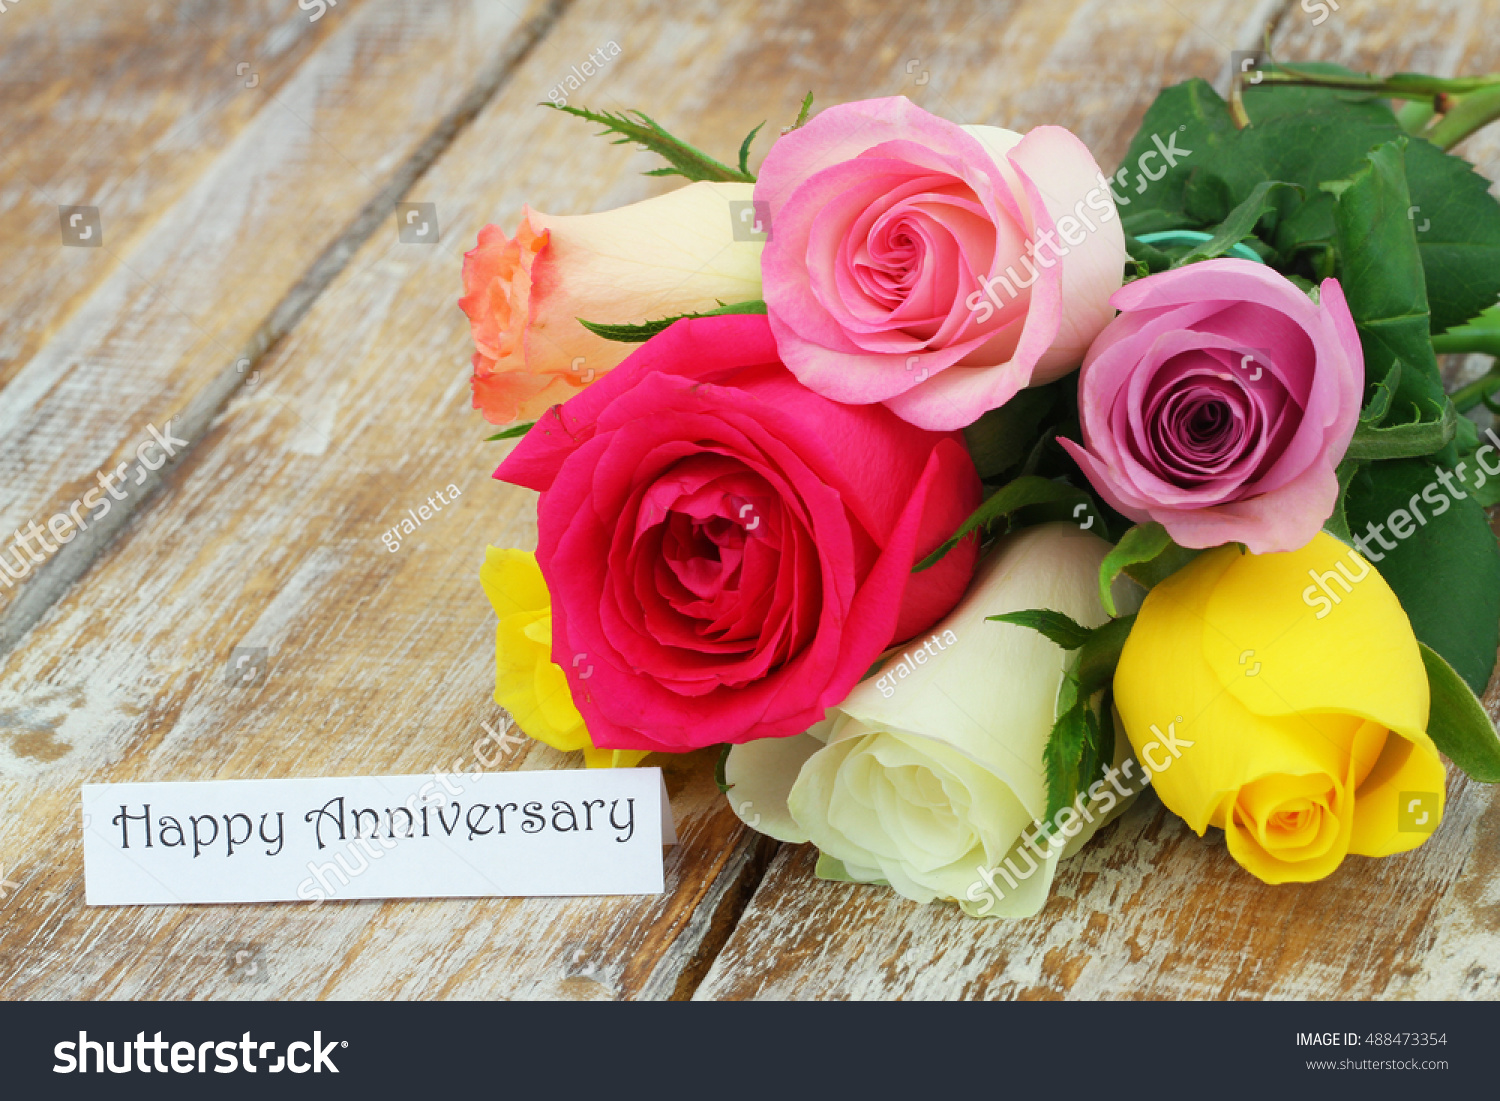 Happy anniversary card colorful bouquet roses stock photo 488473354 happy anniversary card colorful bouquet roses stock photo 488473354 shutterstock izmirmasajfo